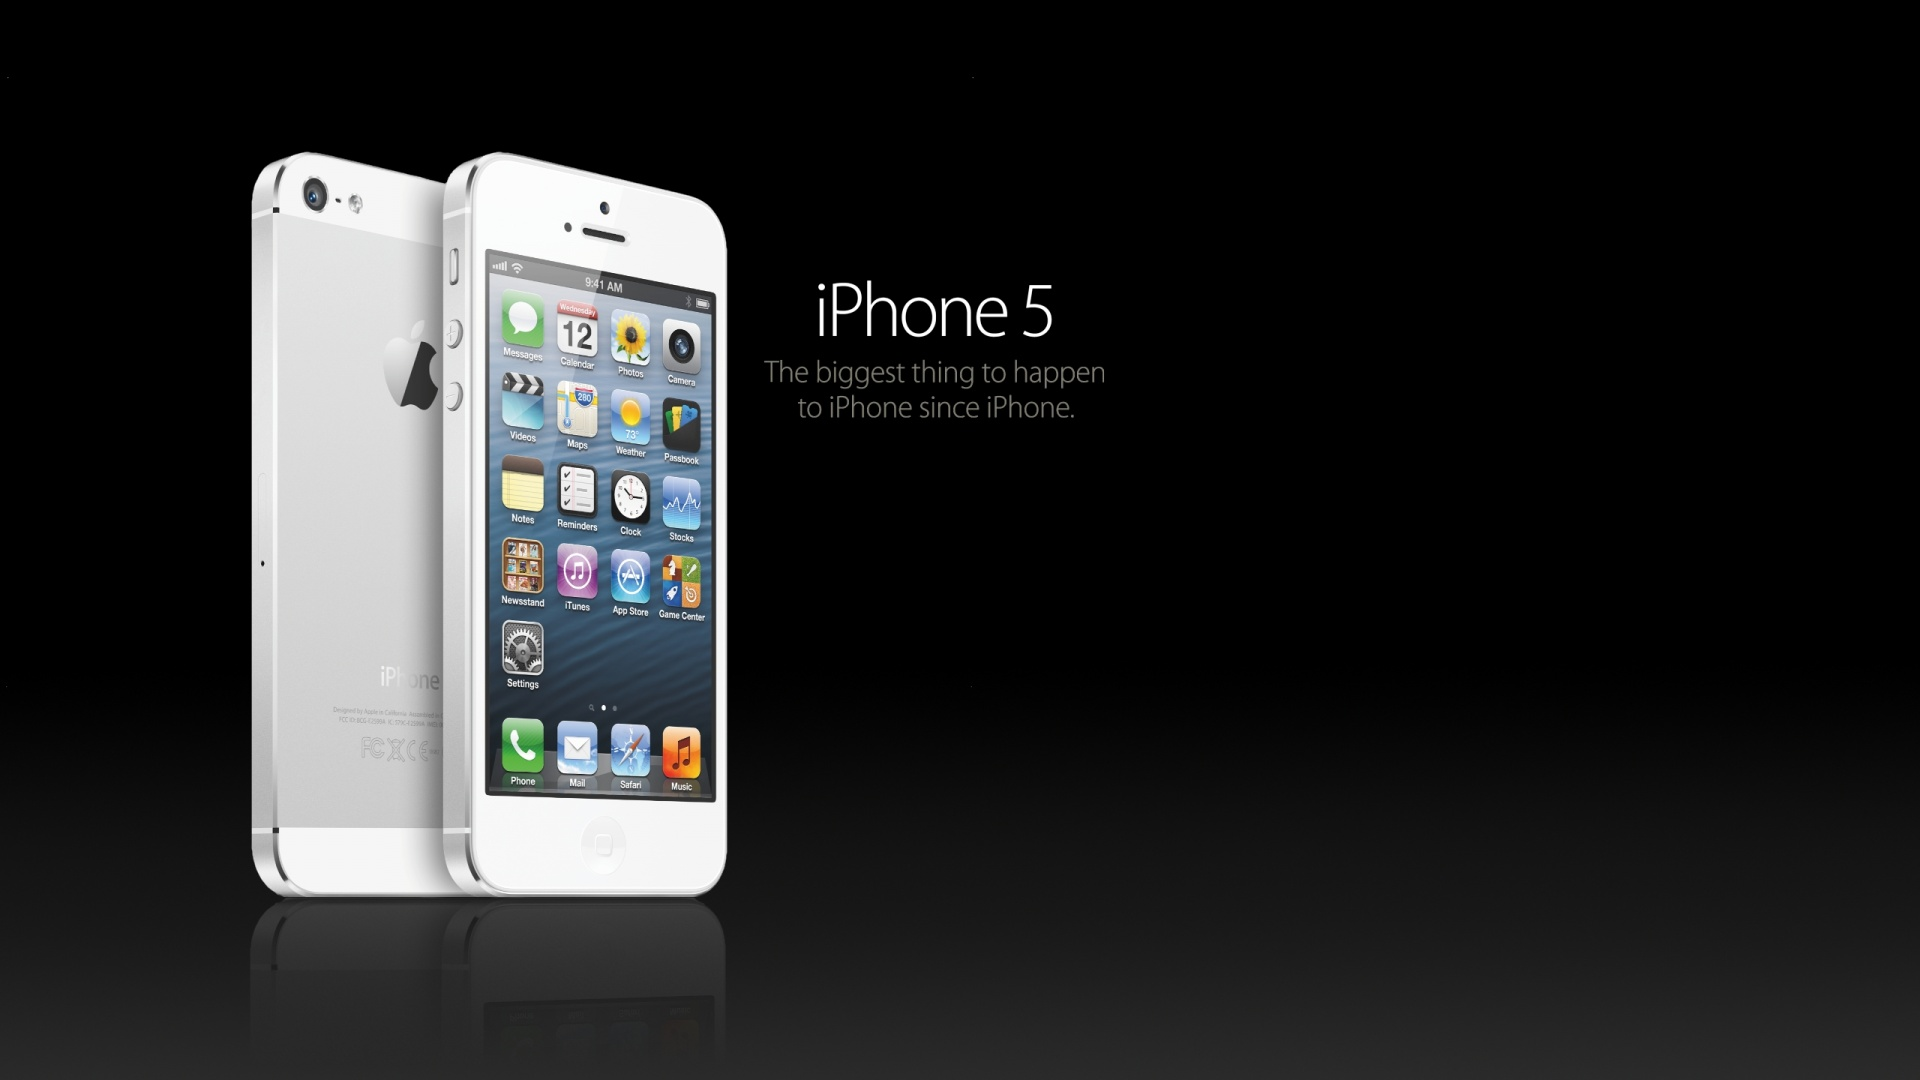 iPhone 5 White HD Wallpaper iPhone 5 White 1920x1080